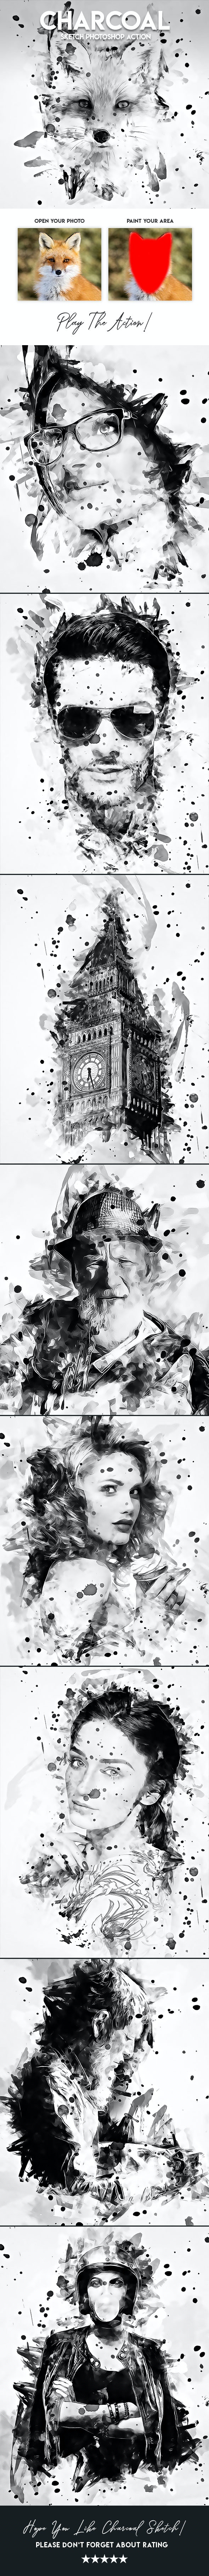 Charcoal Sketch Potoshop action - Photo Effects Actions